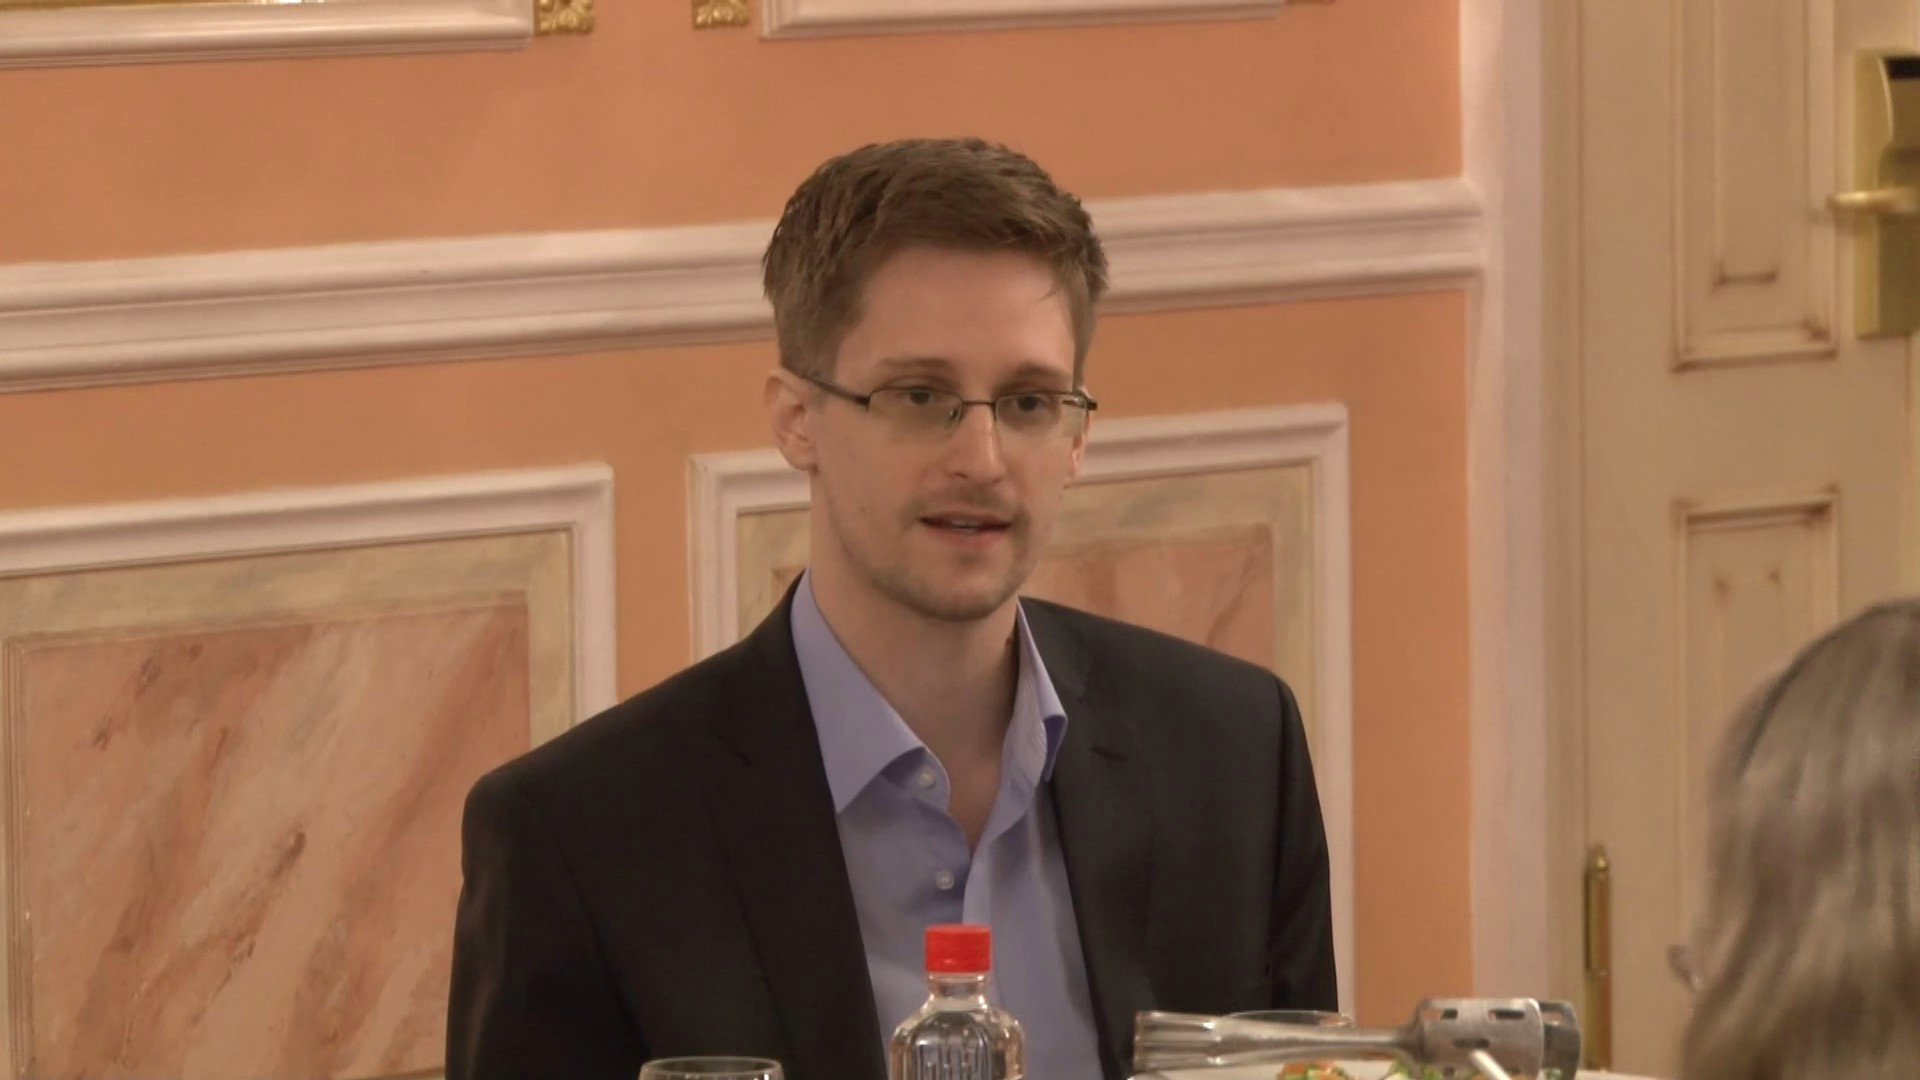 NSA Finds New Snowden Emails — But They're Not About His 'Concerns' With Surveillance